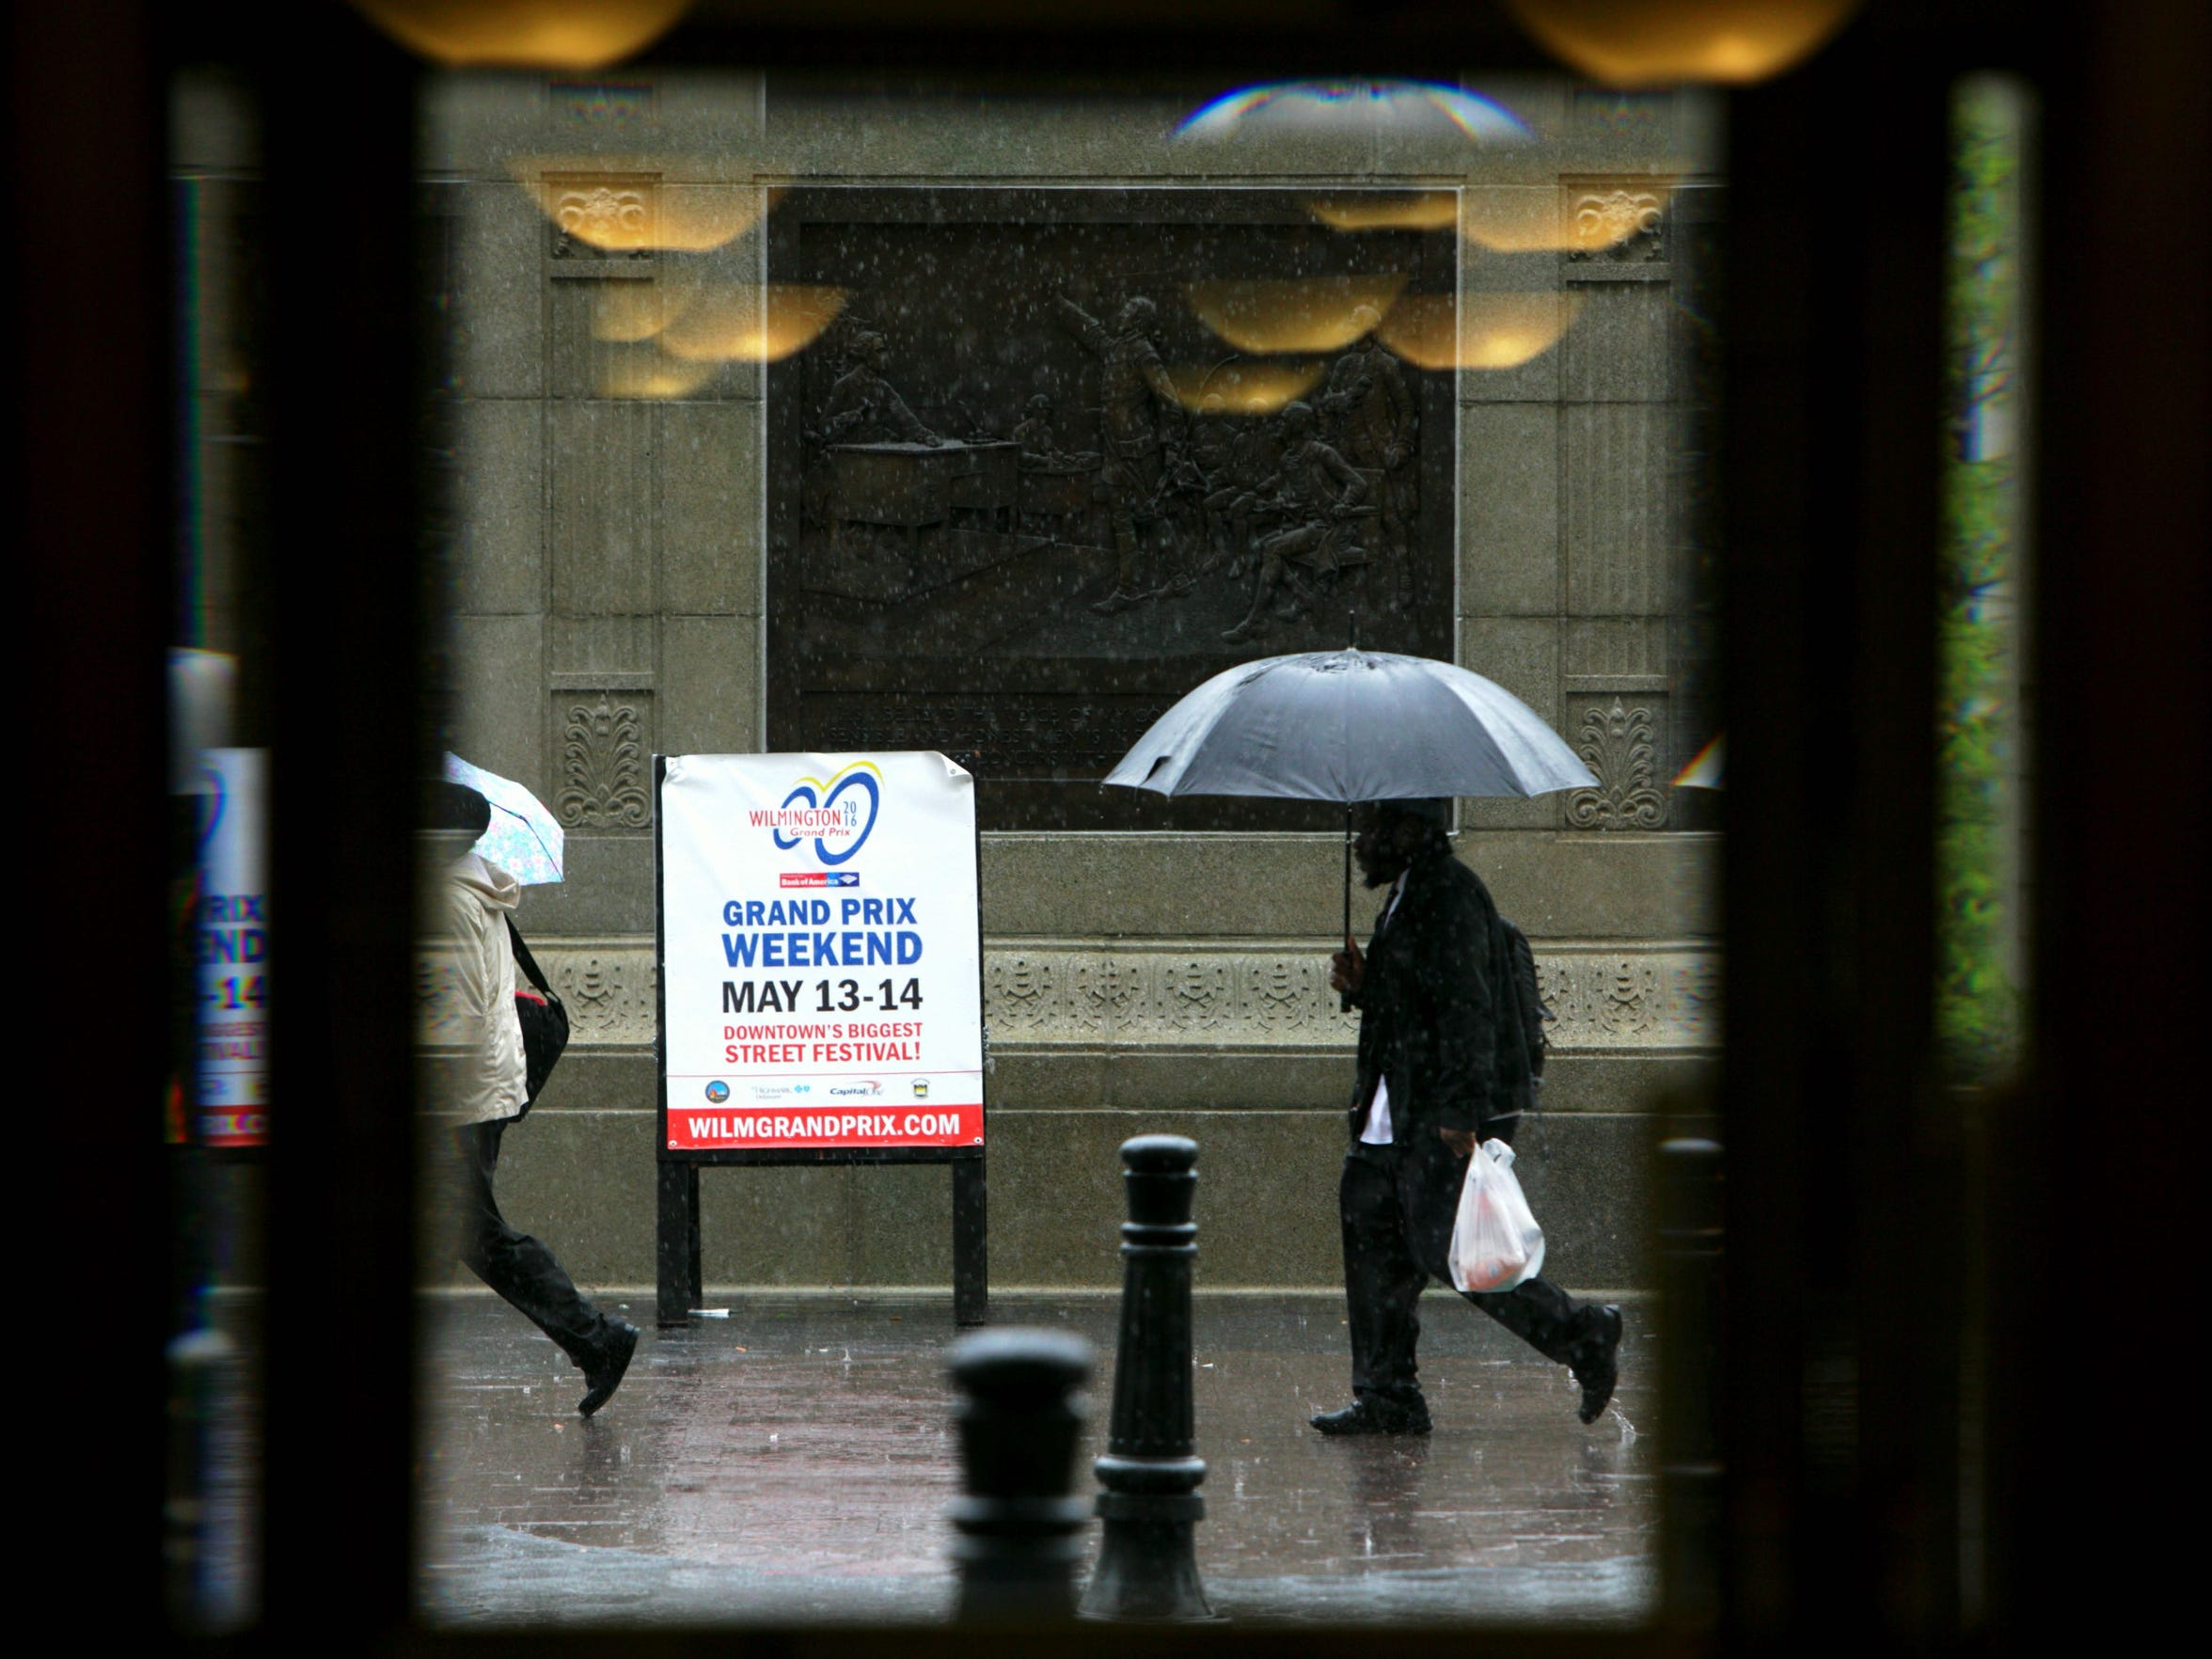 Pedestrians walk by Rodney Square along North Market Street in downtown Wilmington as rain pours down in the area.